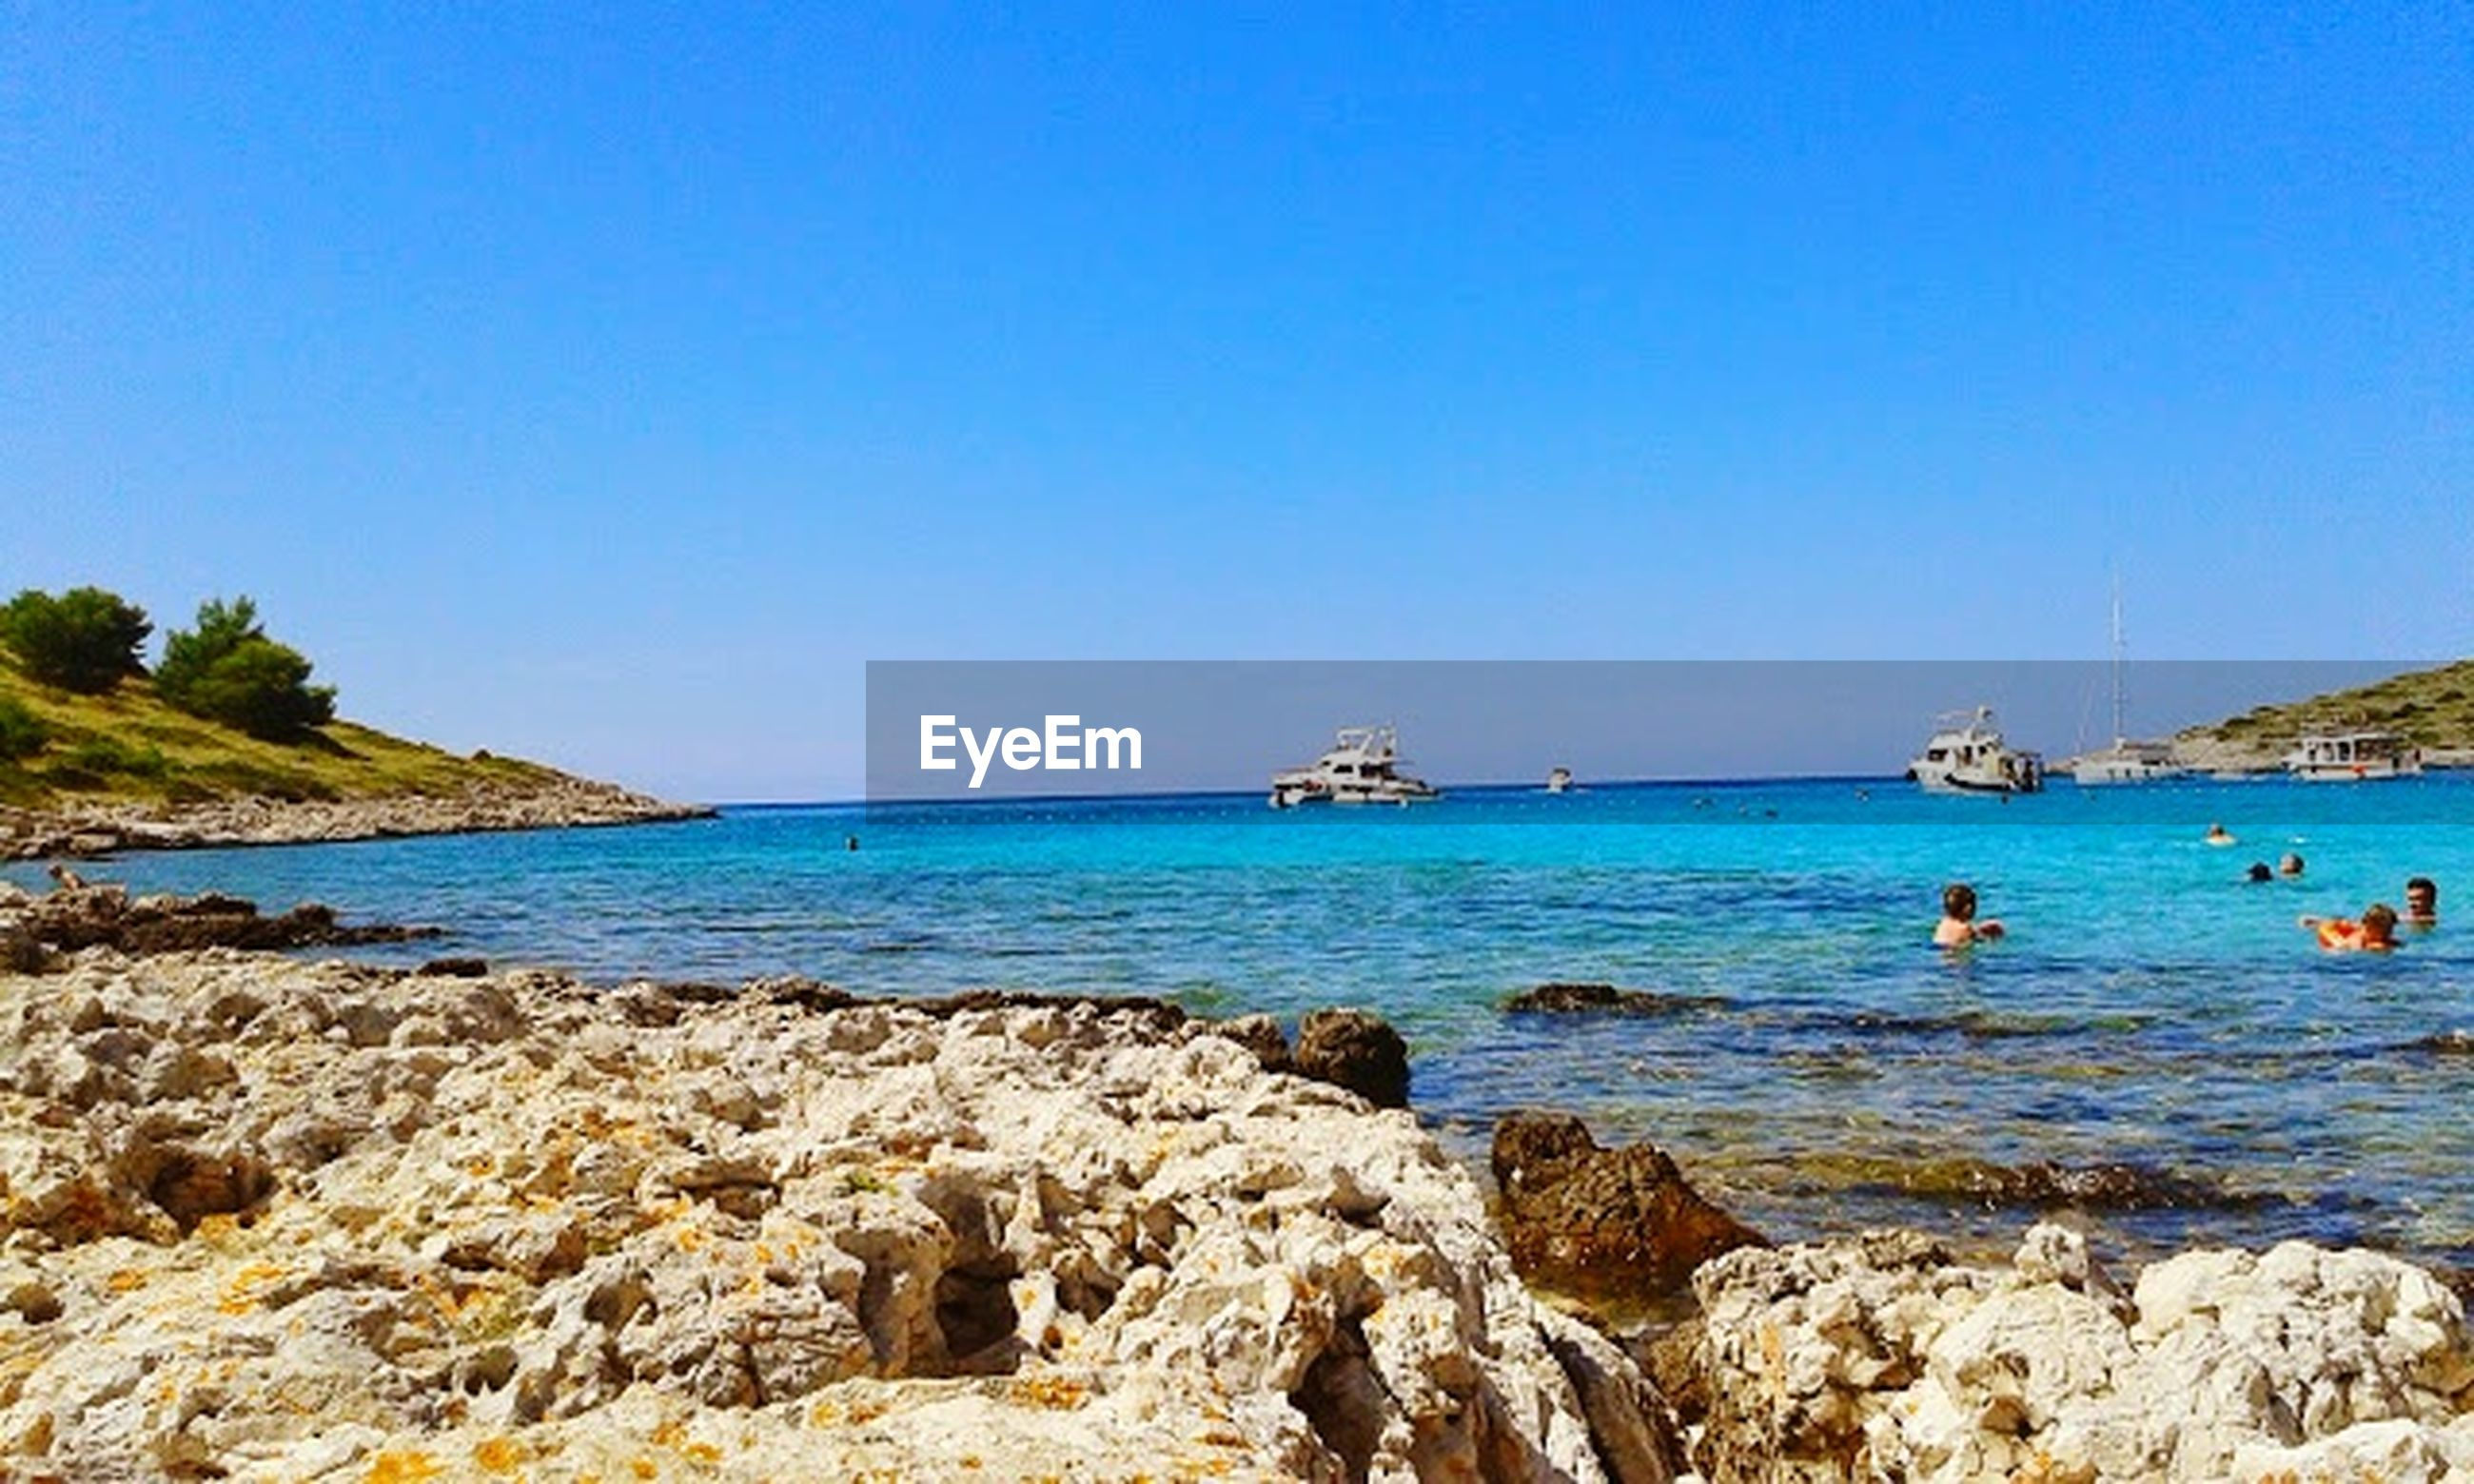 sea, water, clear sky, blue, nautical vessel, copy space, transportation, horizon over water, scenics, tranquility, tranquil scene, mode of transport, beauty in nature, rock - object, beach, nature, boat, shore, rock formation, day